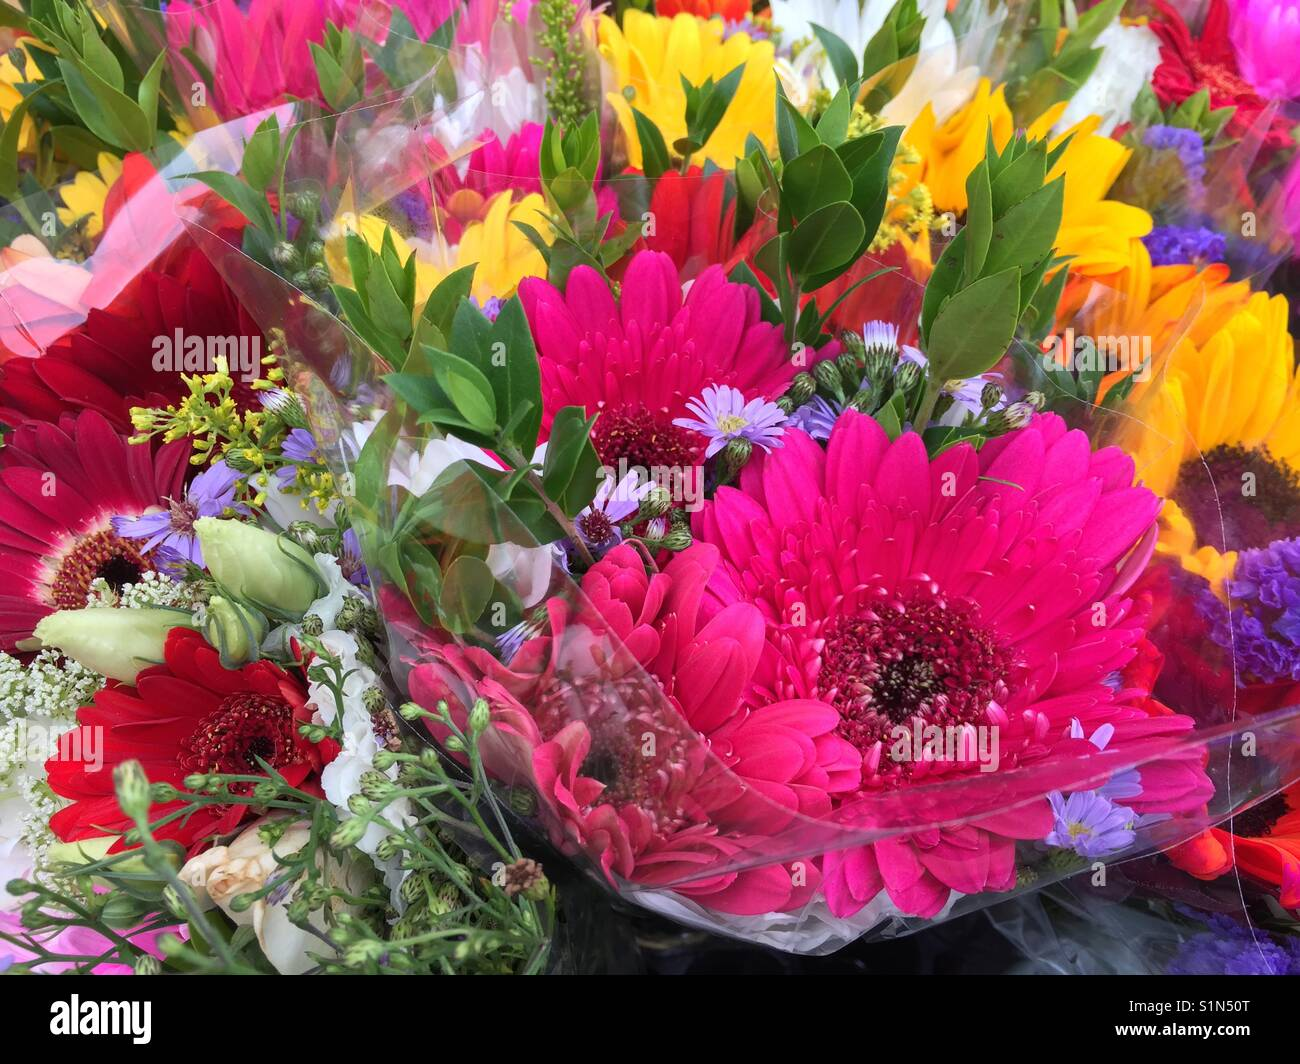 Colorful flower bouquets at local farmers market Stock Photo ...